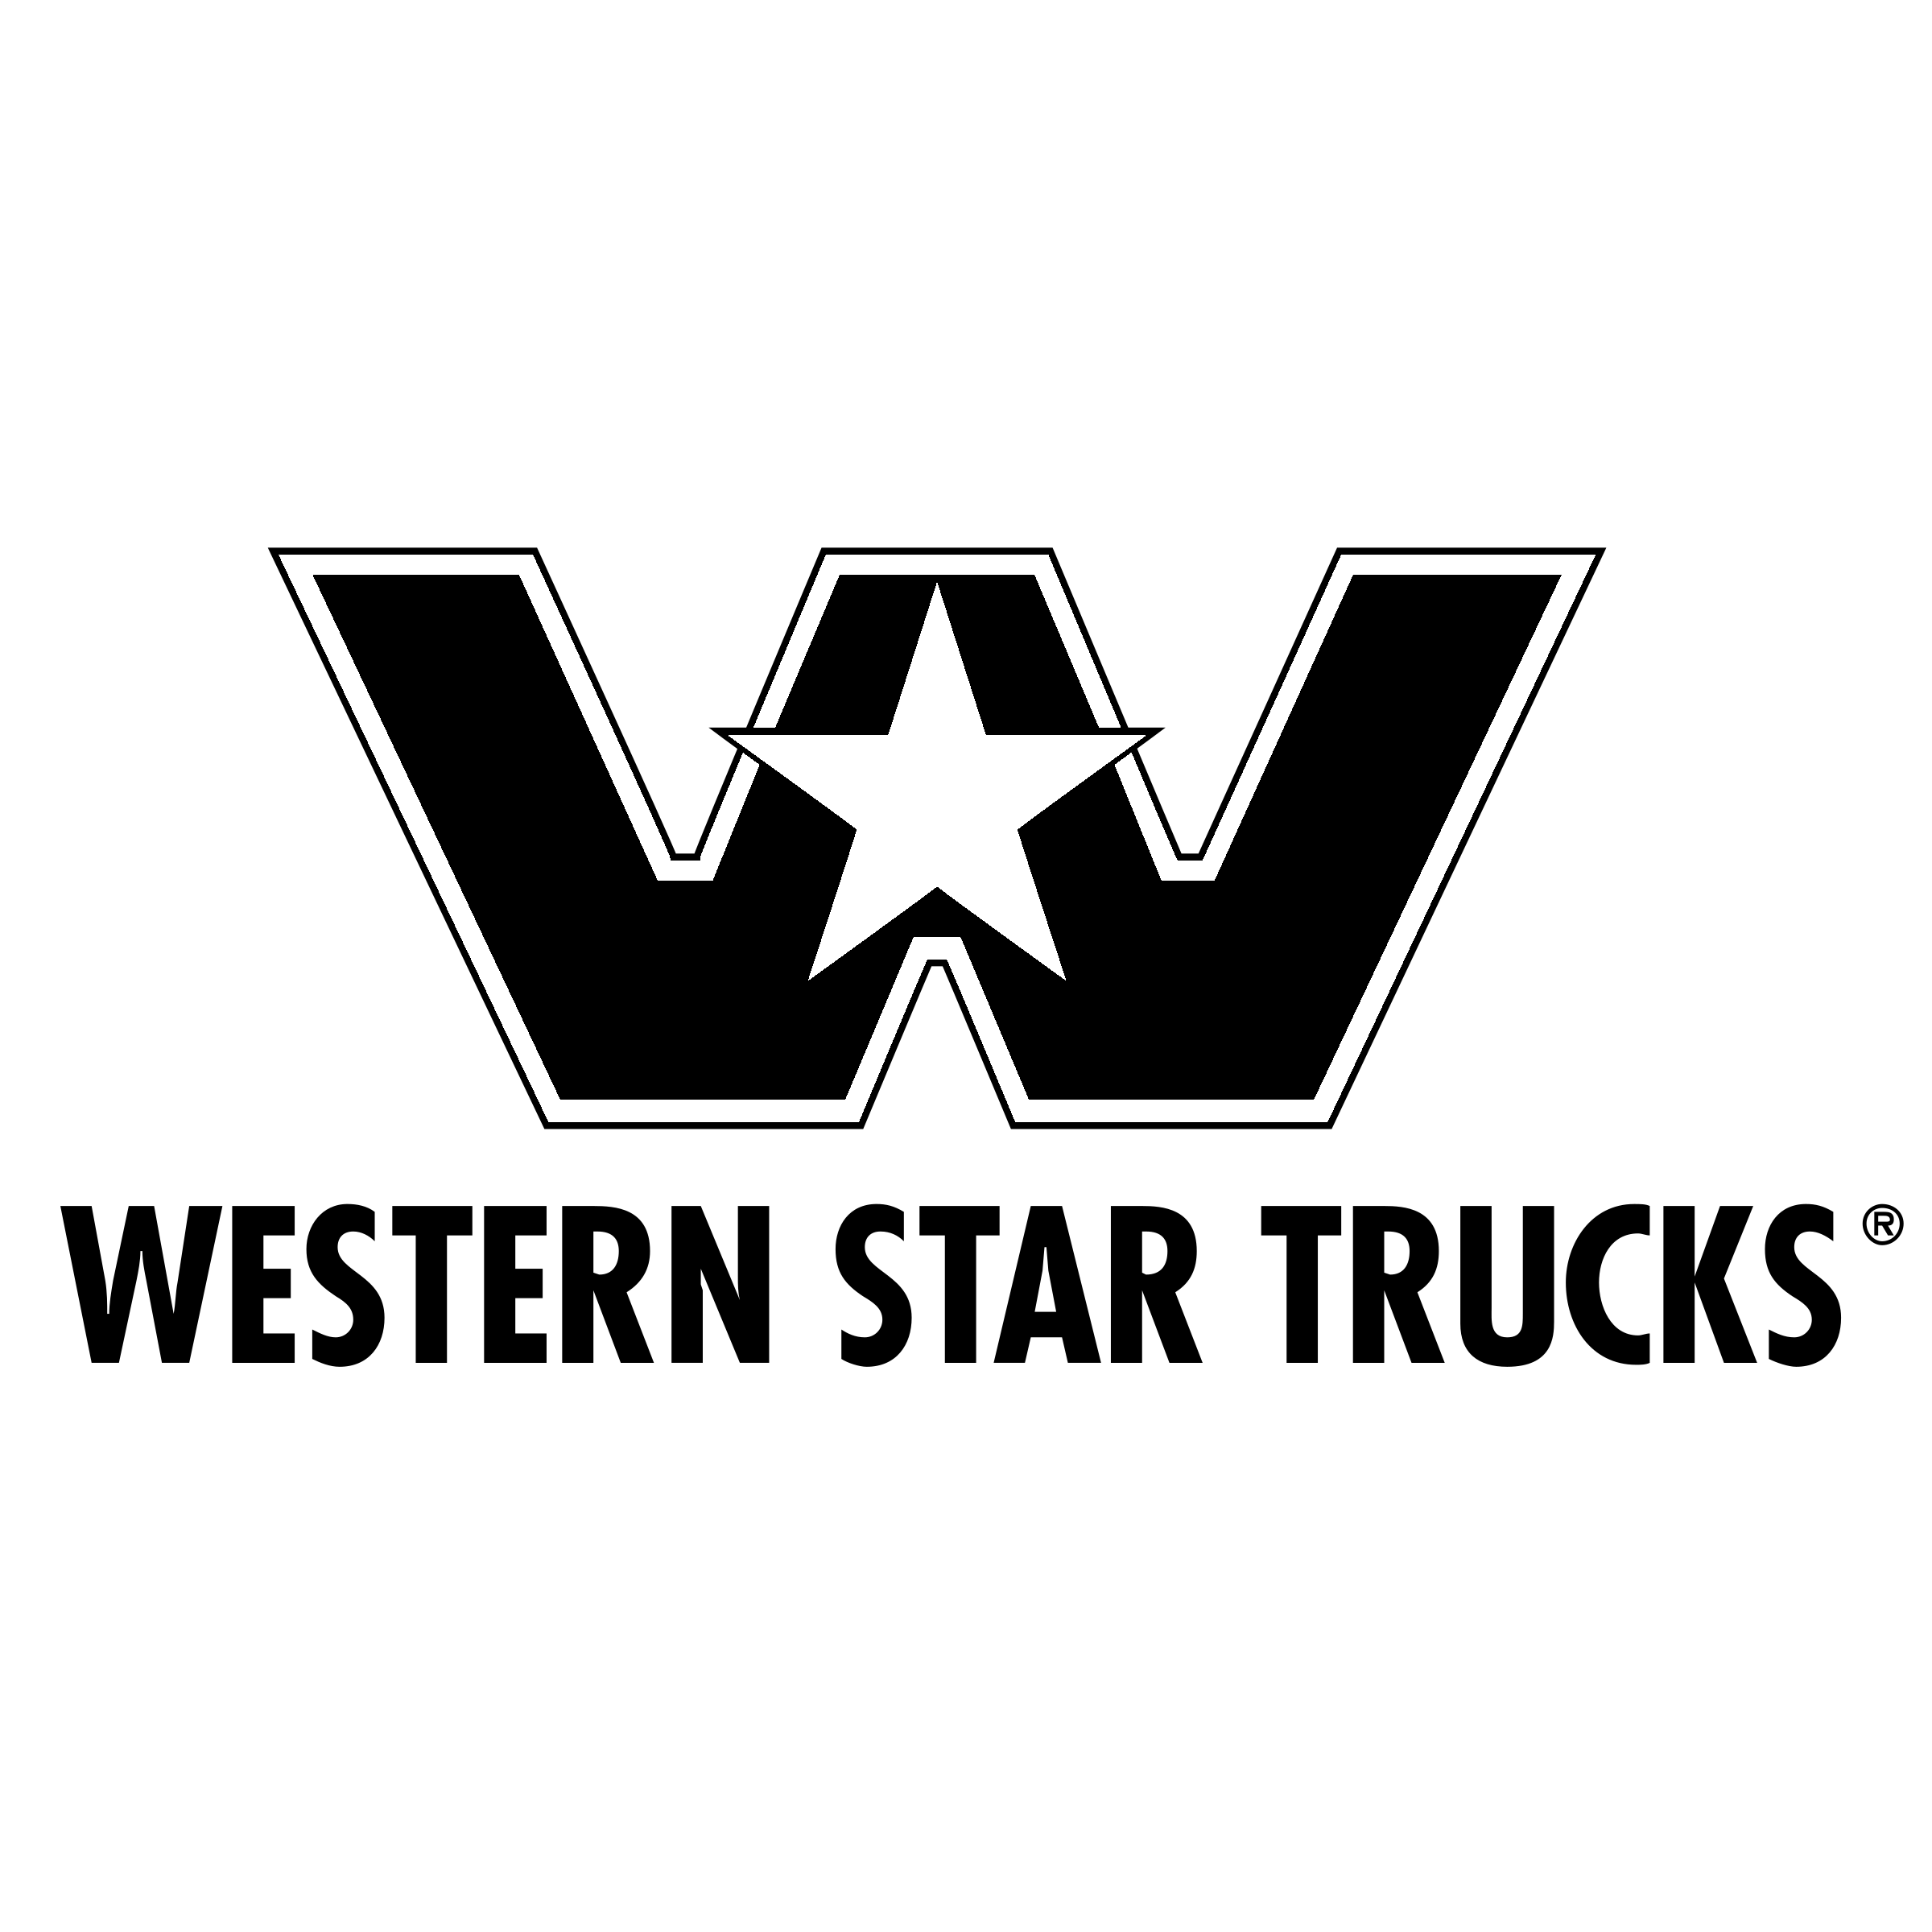 Western Star Trucks Logo Png Transparent Amp Svg Vector